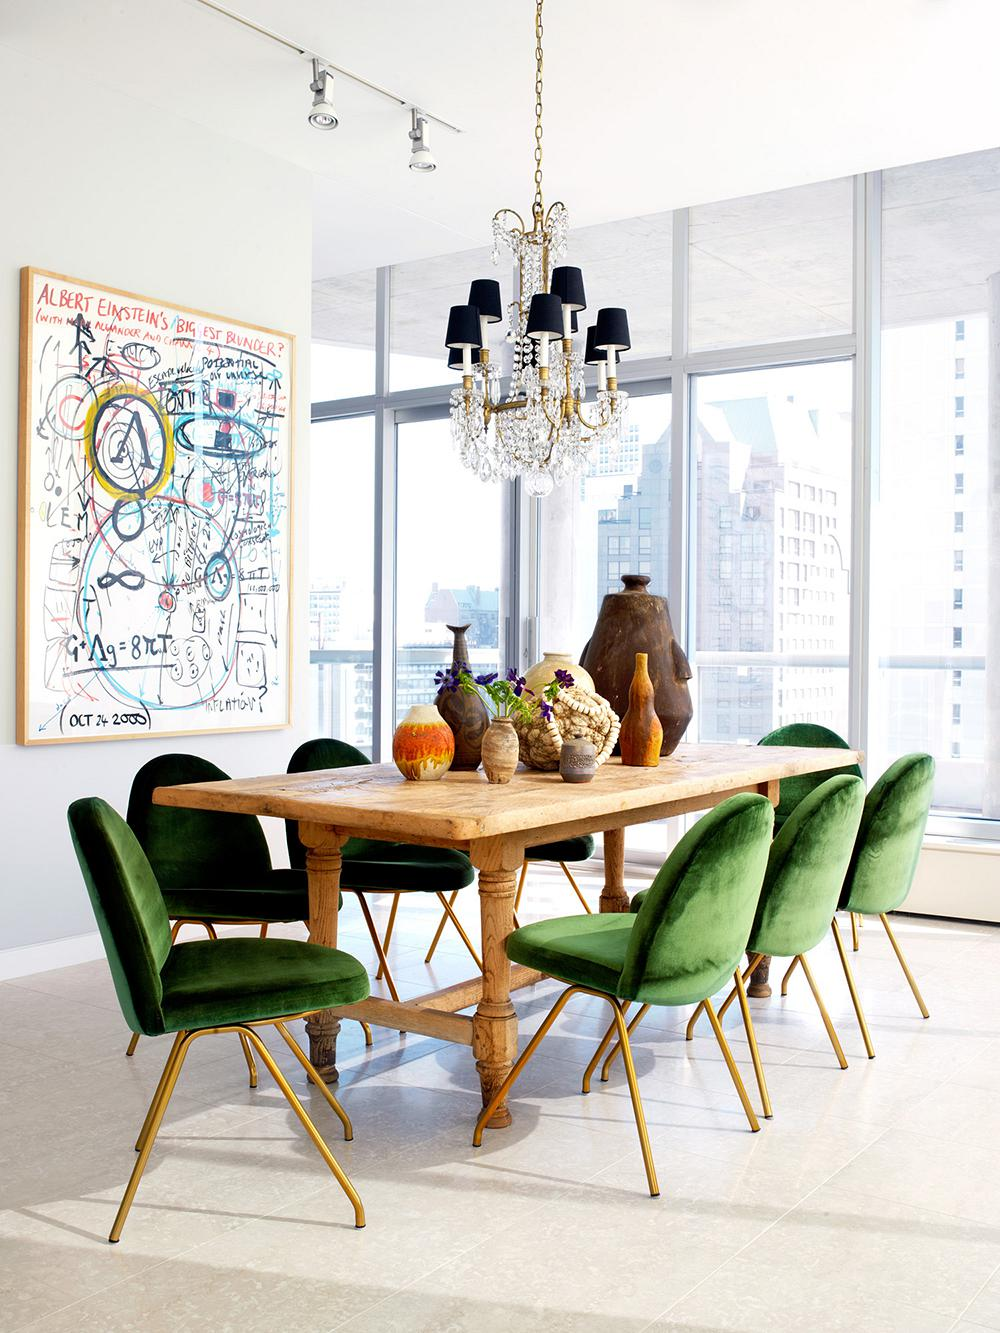 Get Inside these Outstanding Dining Rooms by Nate Berkus Dining Rooms by Nate Berkus Get Inside these Outstanding Dining Rooms by Nate Berkus Get Inside these Outstanding Dining Rooms by Nate Berkus4